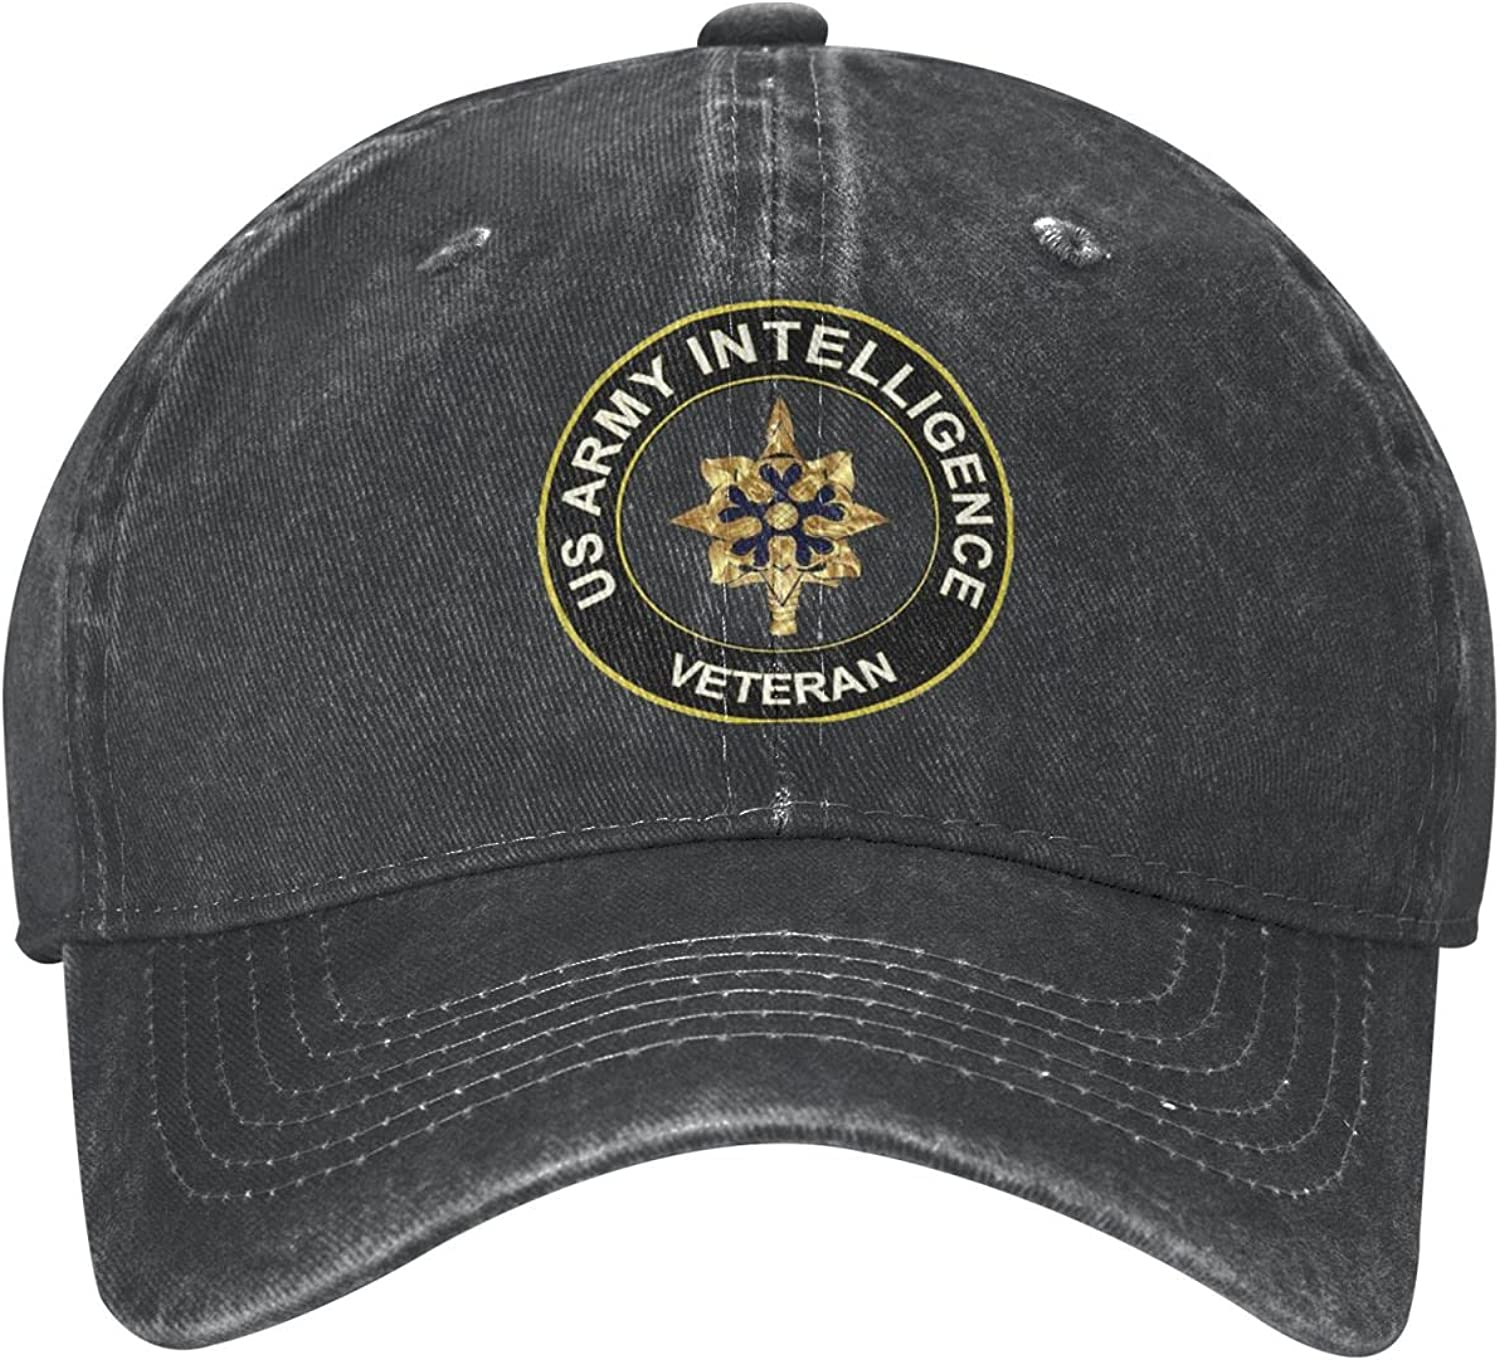 HHDNB US Army Veteran Intelligence Baseball Fitted Cap Cotton Dad Hat Adult Protection for Men Women Black